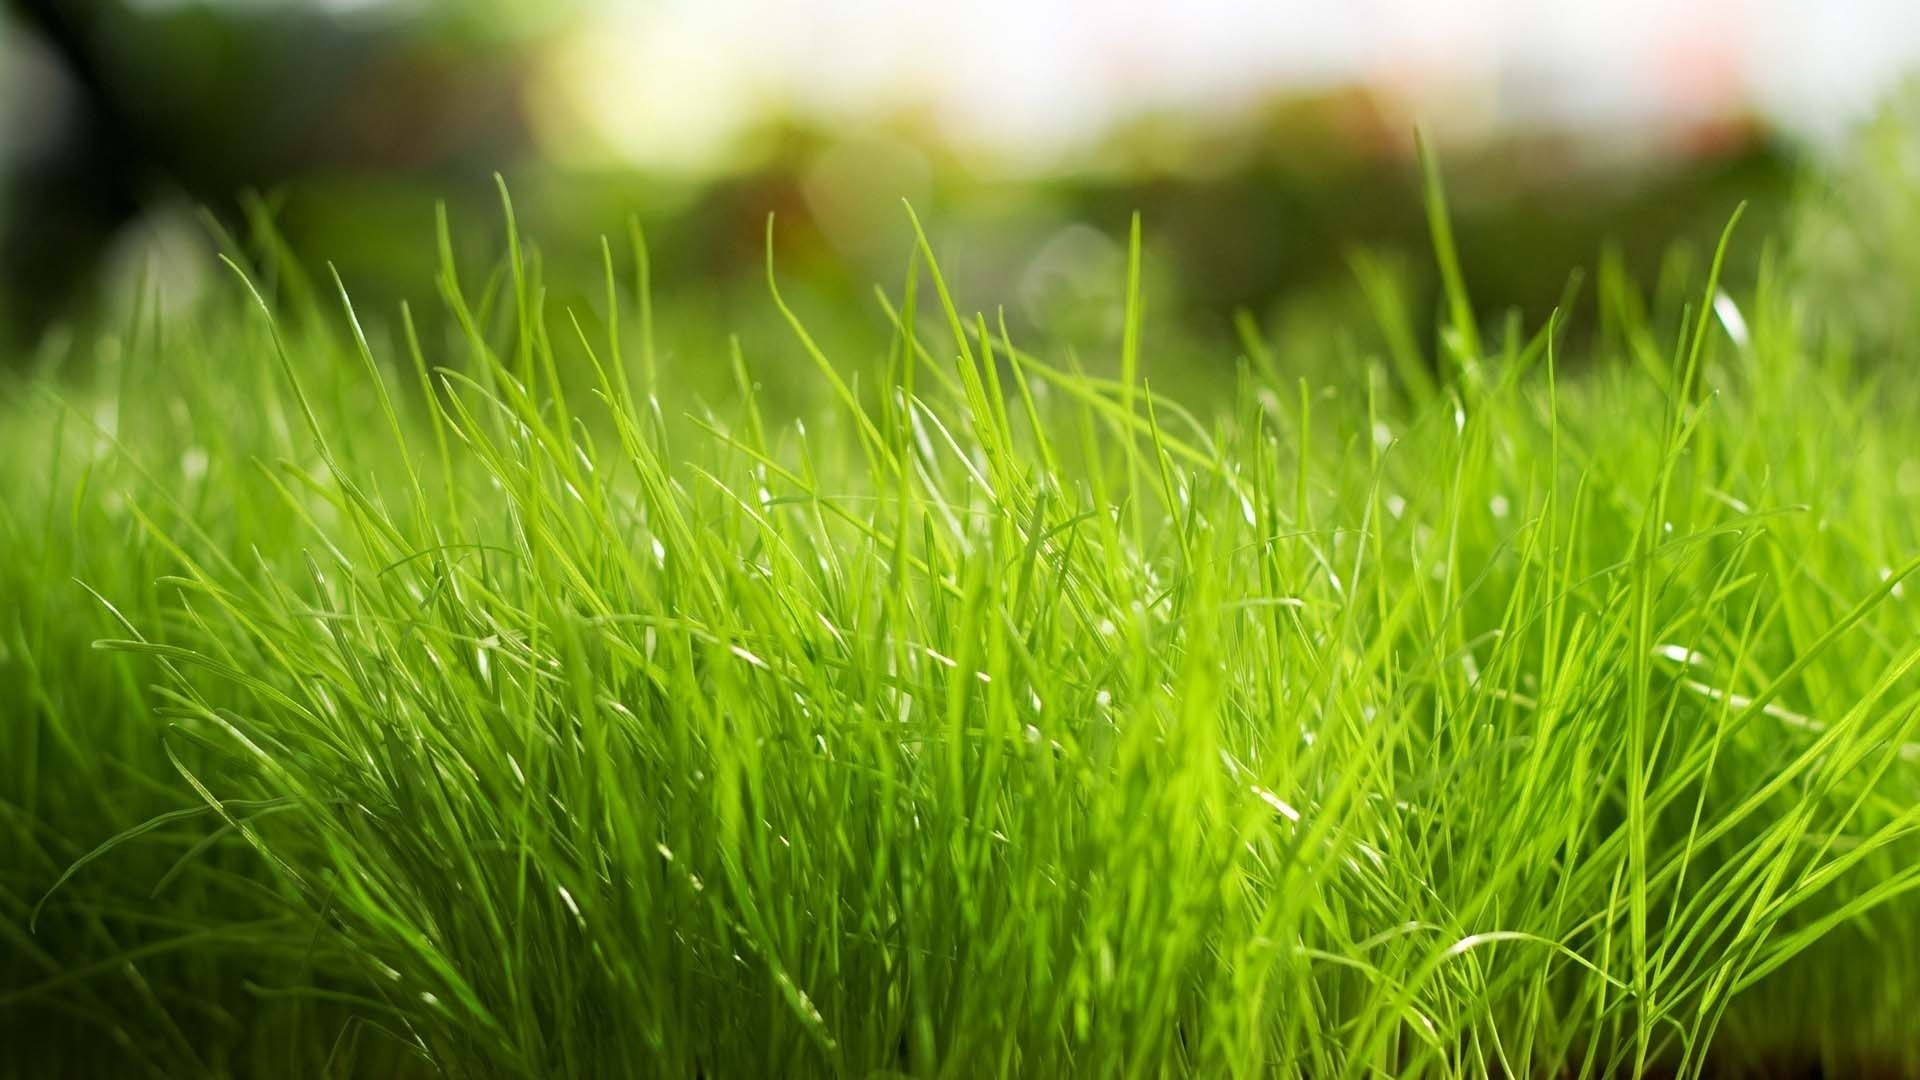 Wild Grass Closeup | HD Nature Wallpapers for Mobile and Desktop